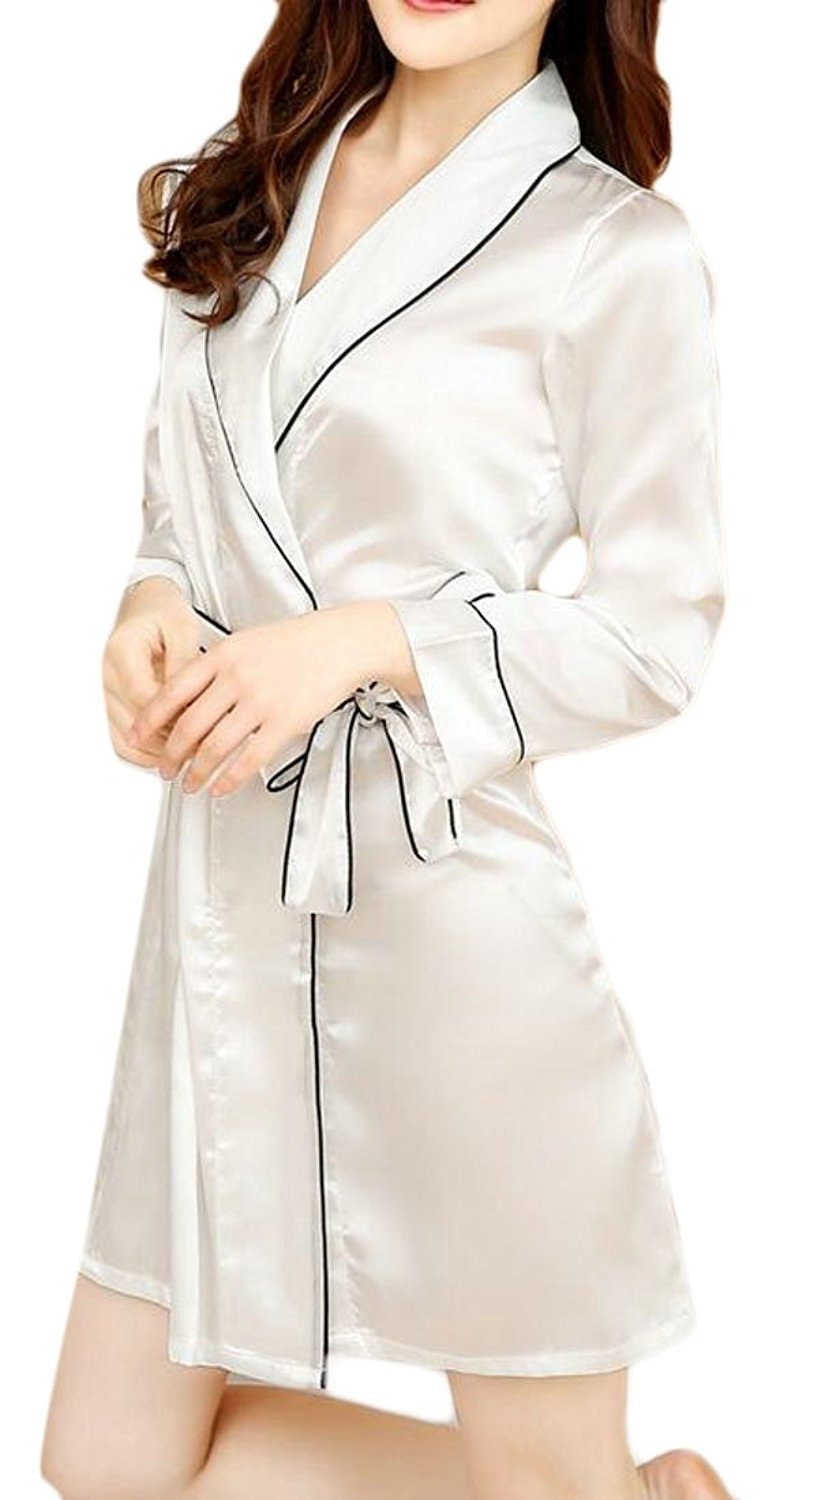 489bfd8a99 Get Quotations · Cromoncent Womens Belted Satin Silky Housecoat Sleepwear Bathrobe  Robe